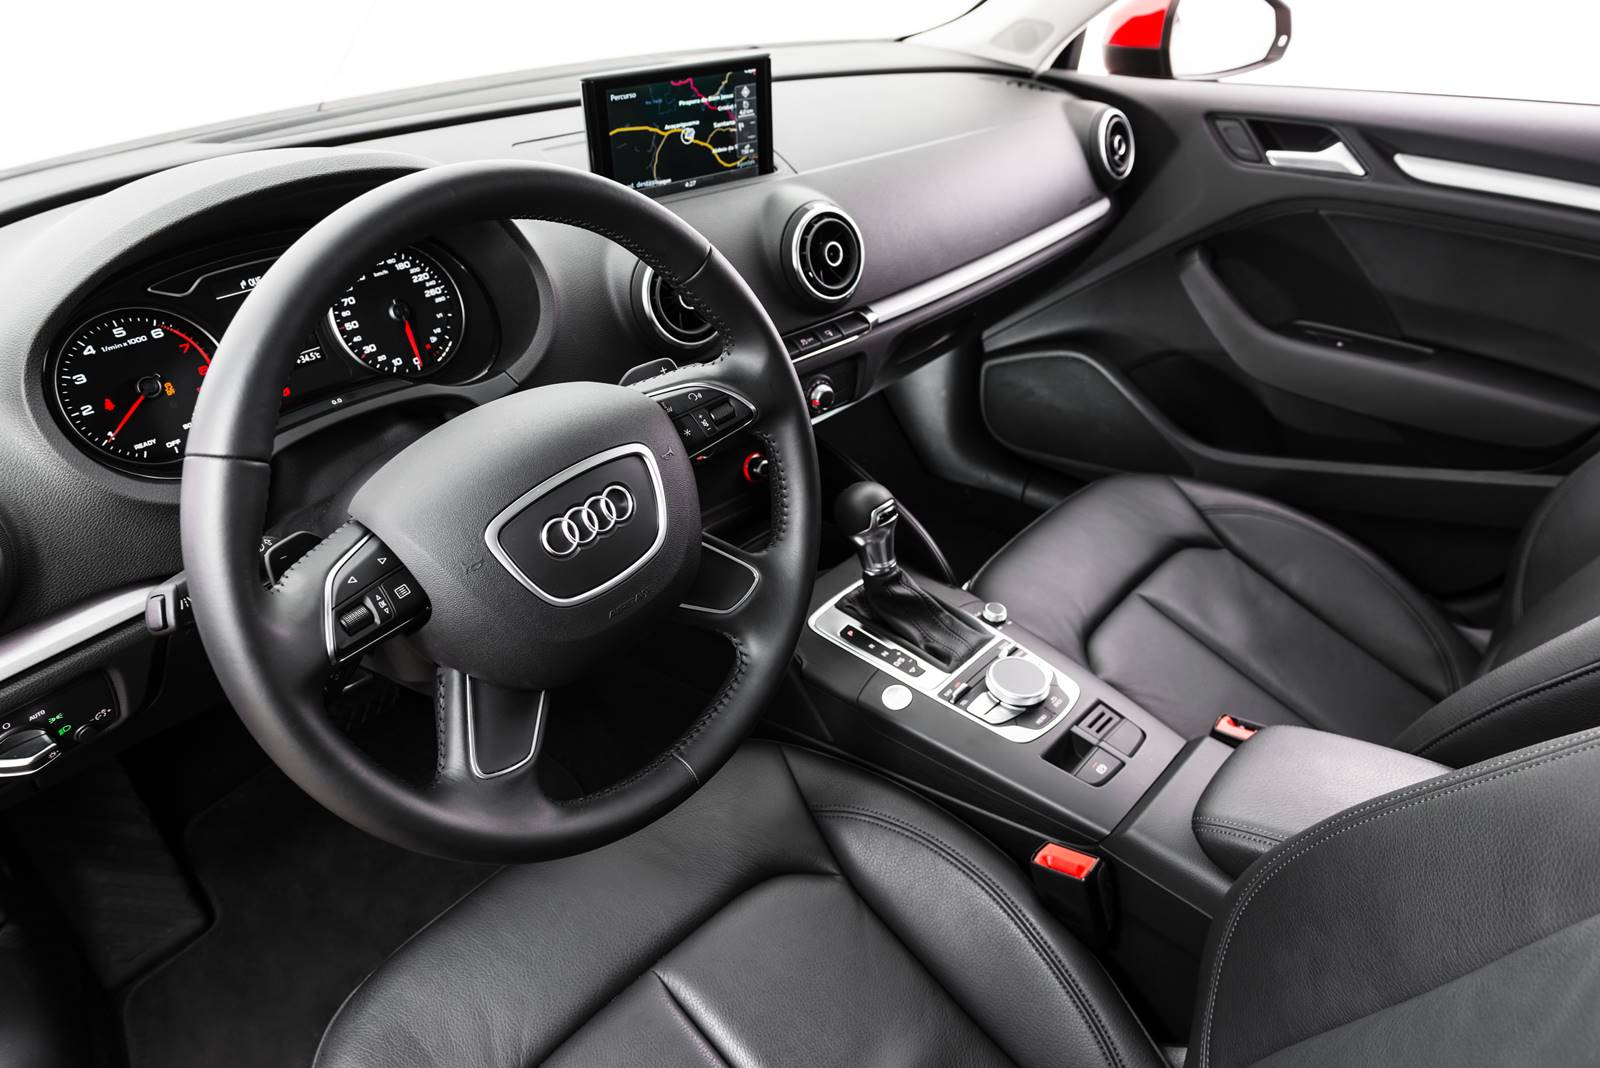 Audi A3 Sedan Flex x VW Golf DSG - interior